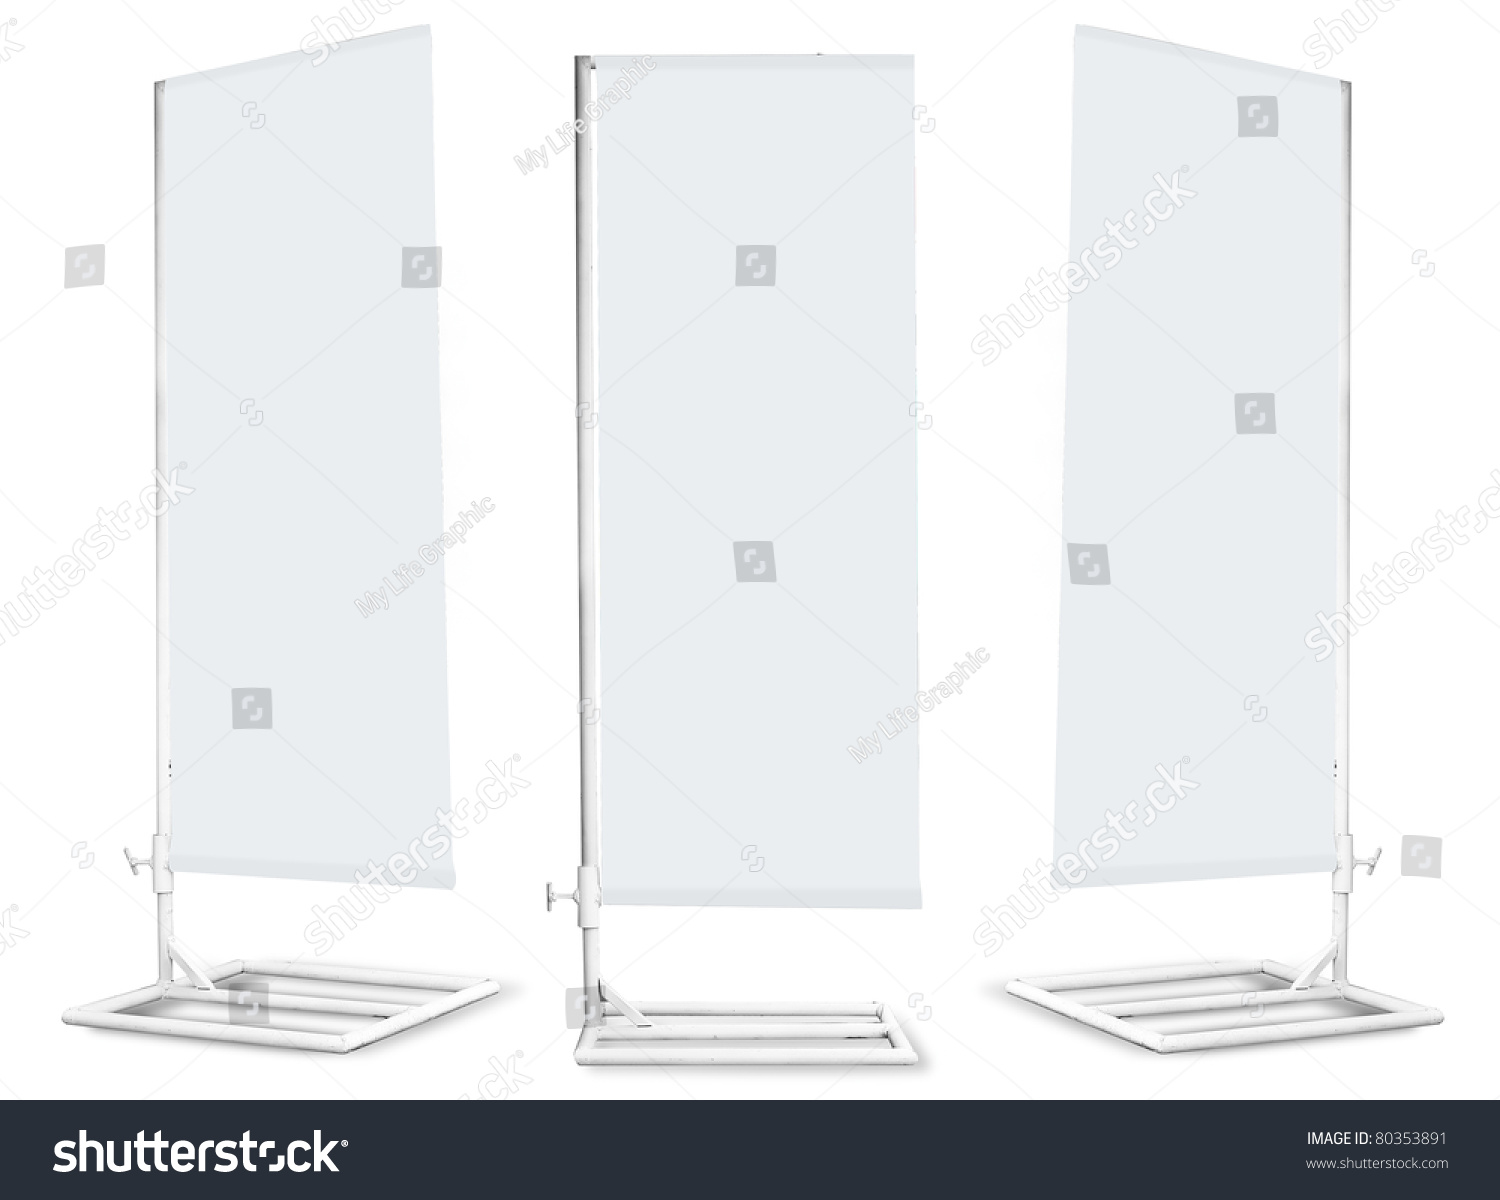 blank banner japanese flag display template stock illustration, Powerpoint templates